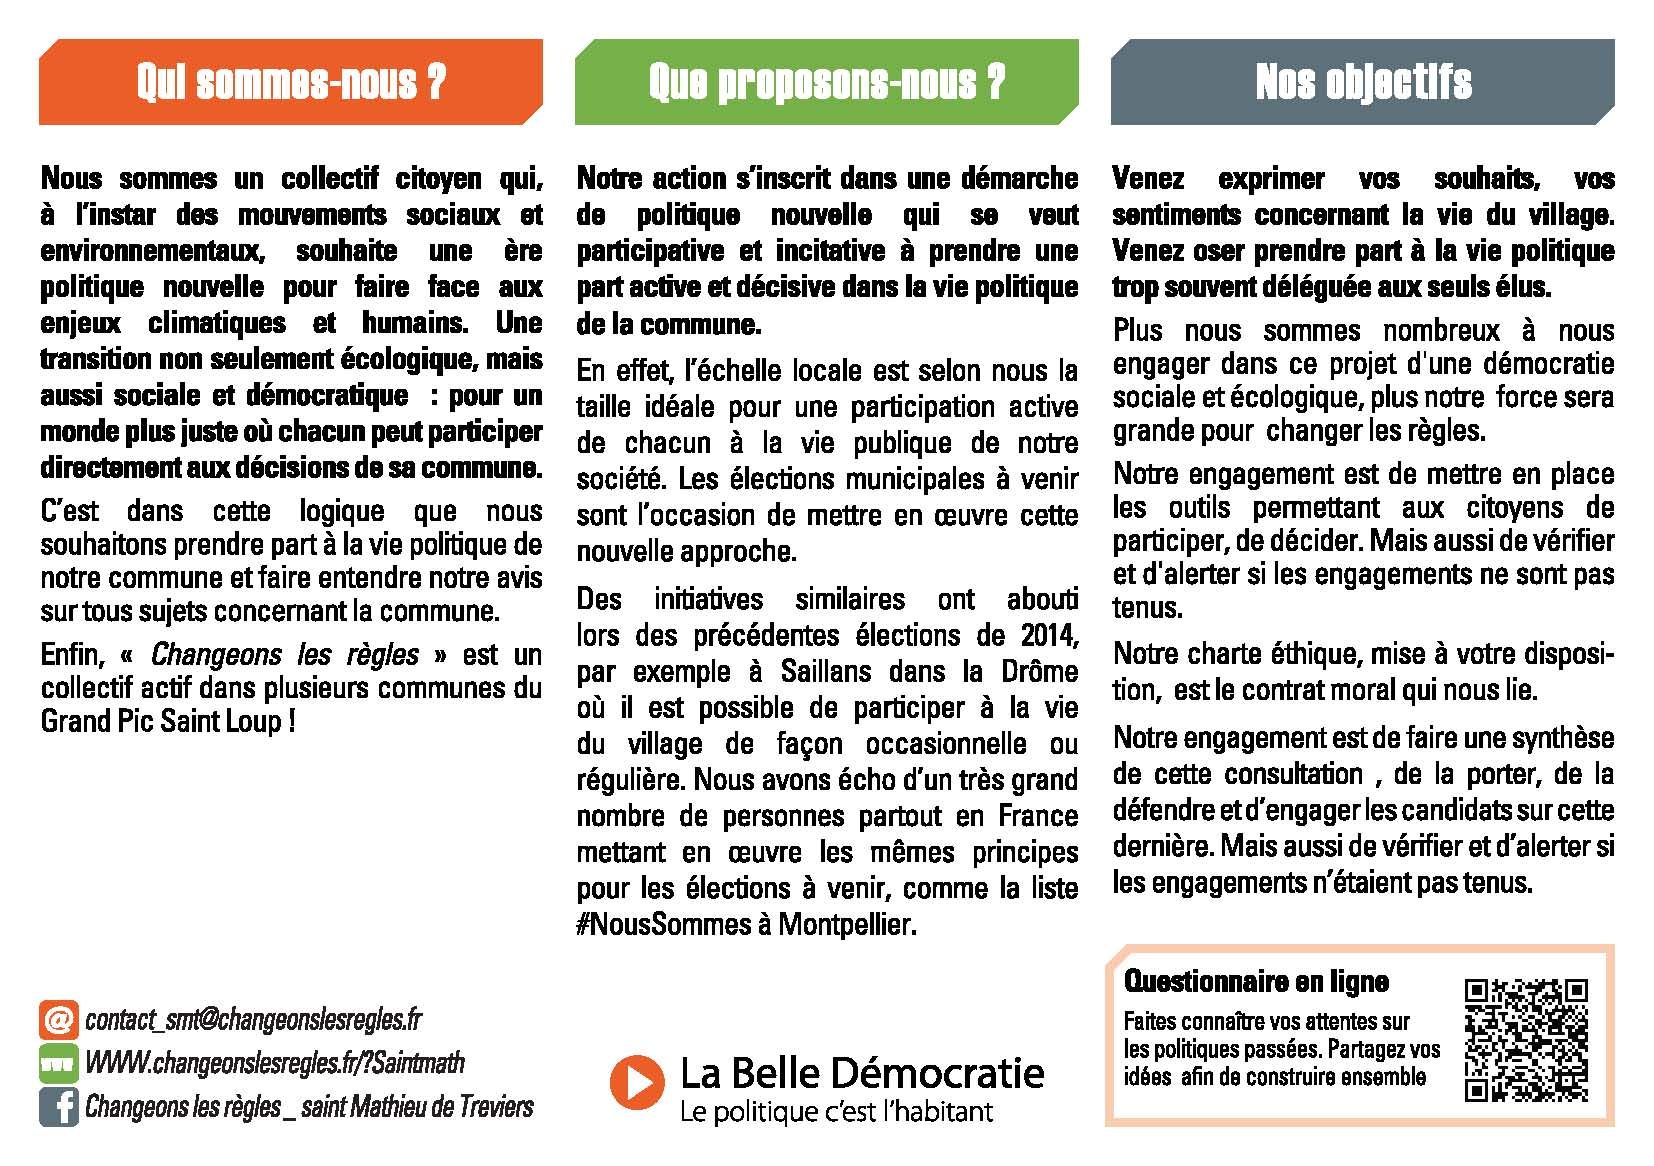 image CLR_Appel_a_candidature_A5_V3_Page_2.jpg (0.3MB)